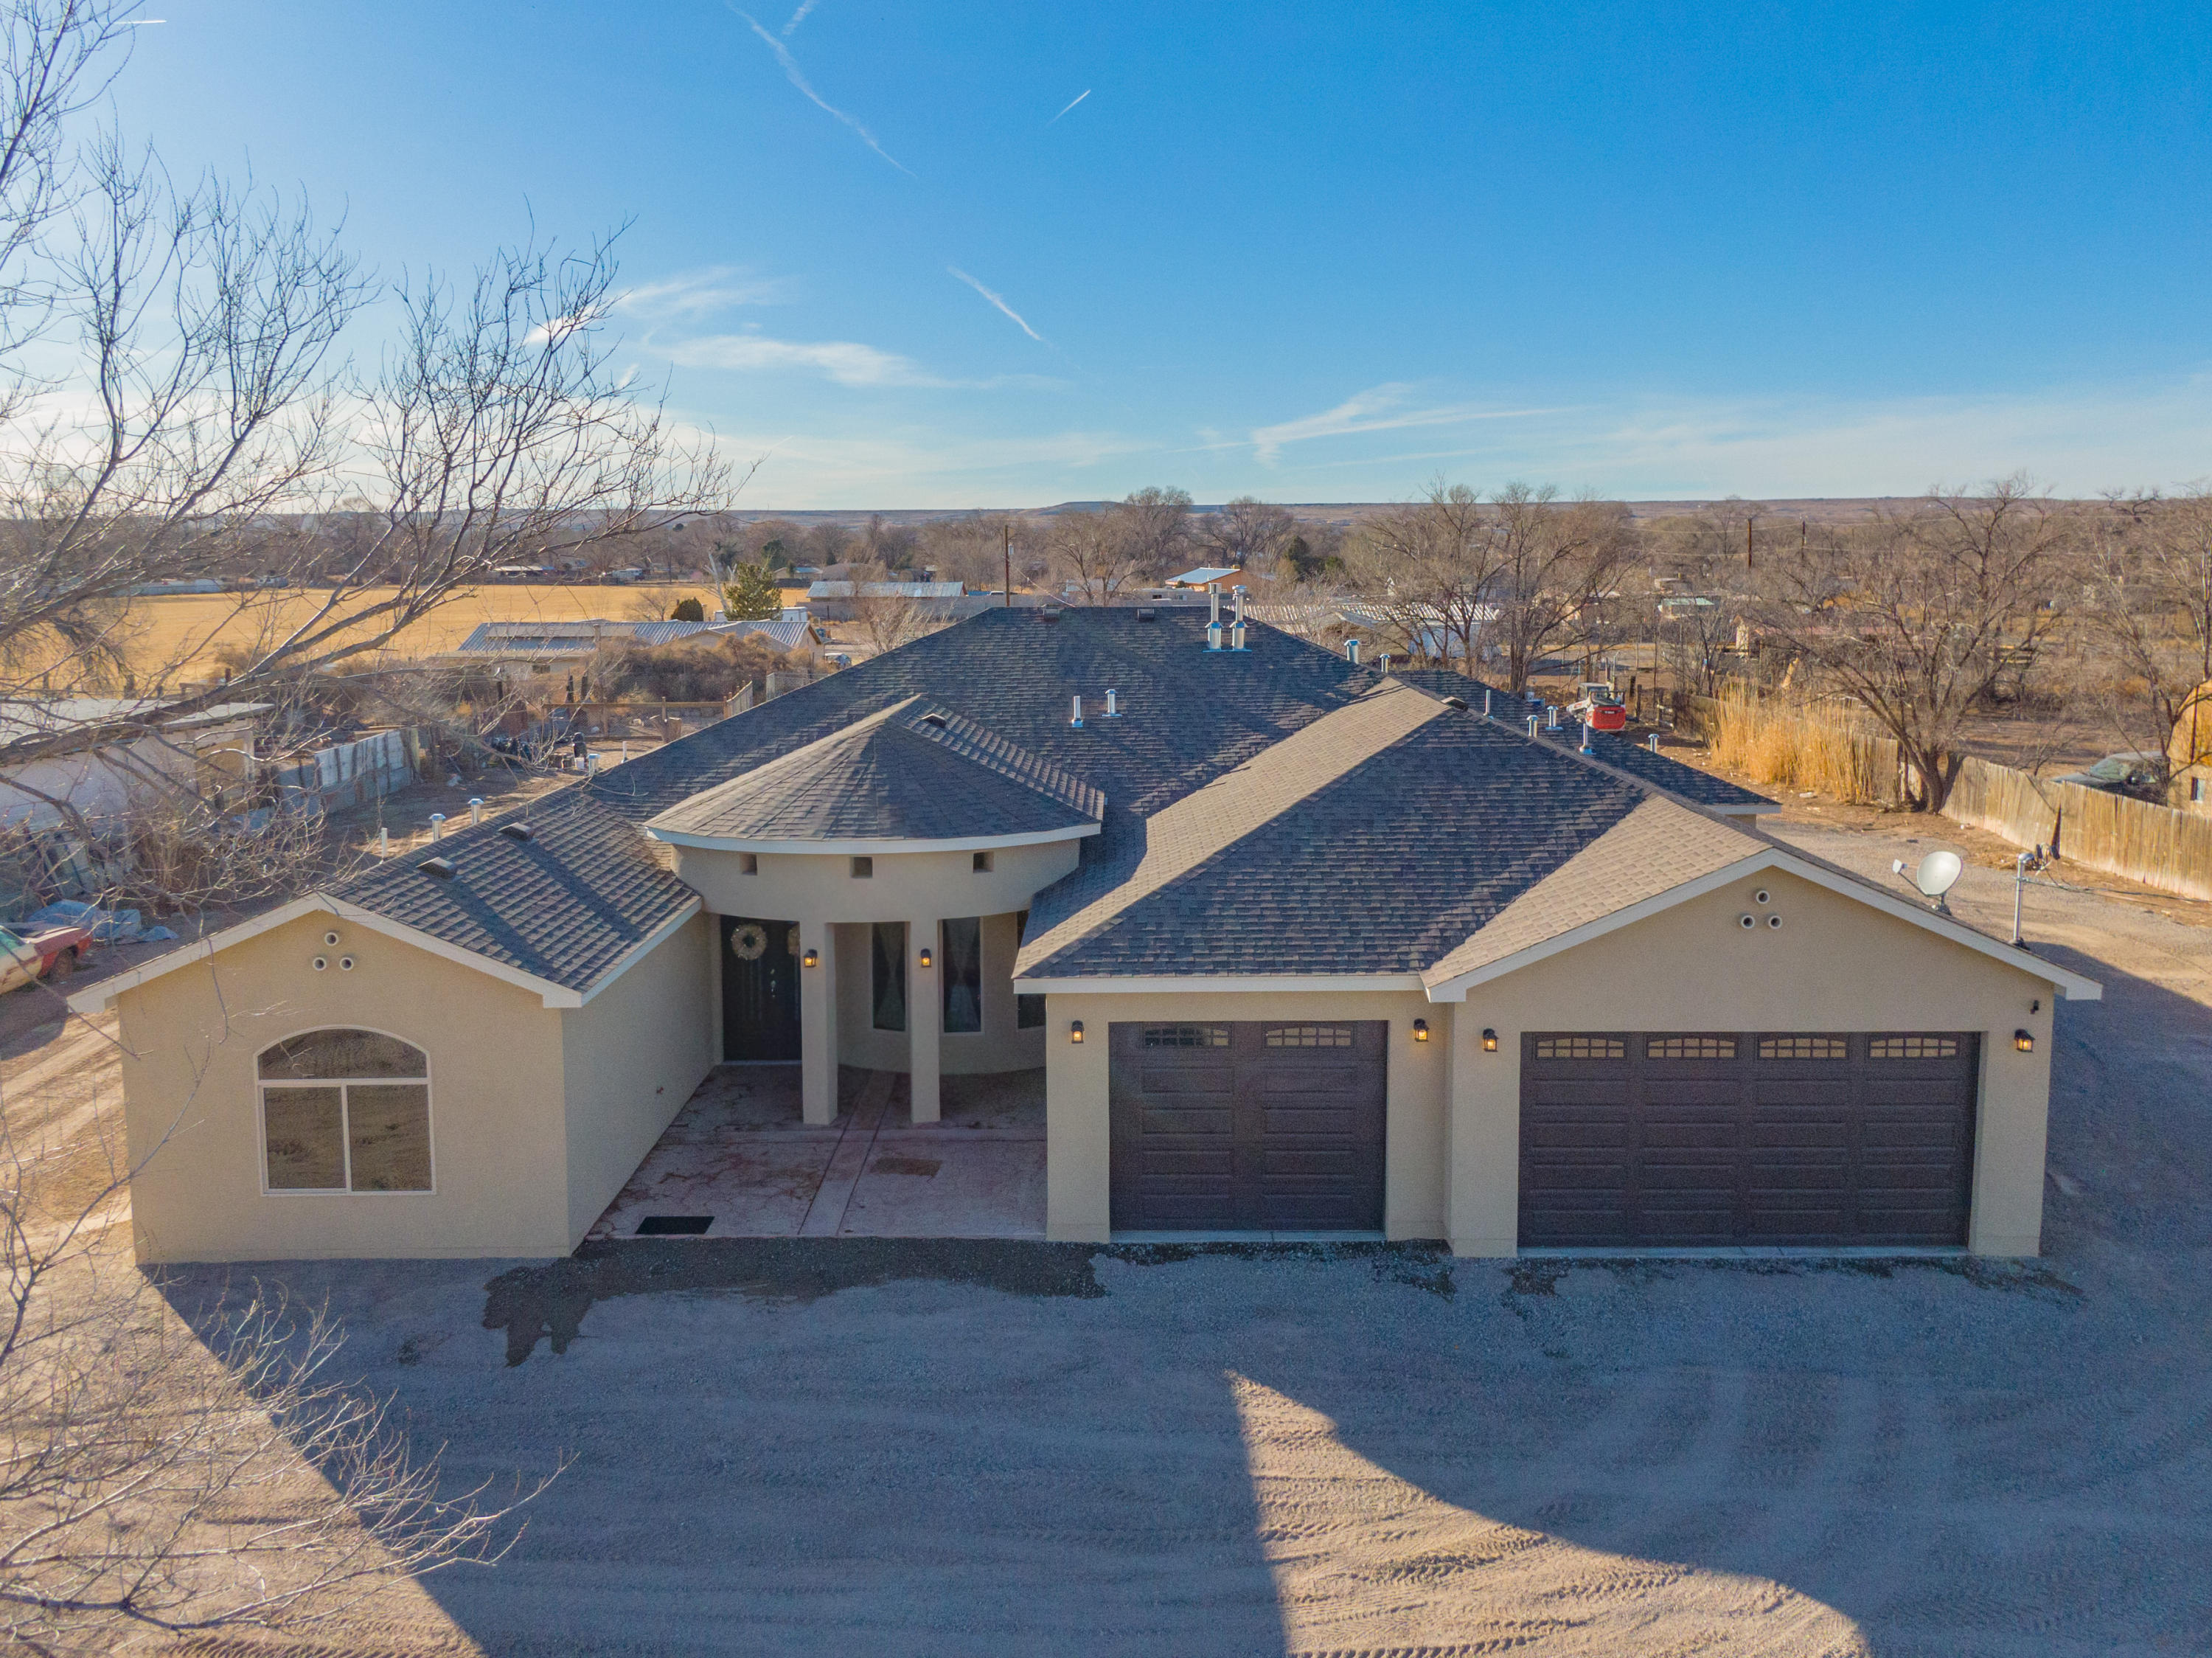 Take a look at this beautiful, thoughtfully-designed custom home. Nestled on a .89 acre Lot. 4 bedrooms, 4 full bathrooms, ''5 car garage'' with access door to the back yard, and another door to a full bathroom. This one year old CUSTOM home has it all, a large open floor plan with superior chef kitchen, granite counter tops, huge center island with seating, stainless steel appliances and breakfast nook. The Master Bedroom and Bath are HUGE with an ample walk-in closet. The Master bathroom has a garden tub with separate shower and his and her sinks. The 2nd Bedroom has its own full bathroom and walk-in closet, The other two bedrooms are generously sized with a jack-and-jill bathroom and walk-in closets. Schedule your visit today!!!